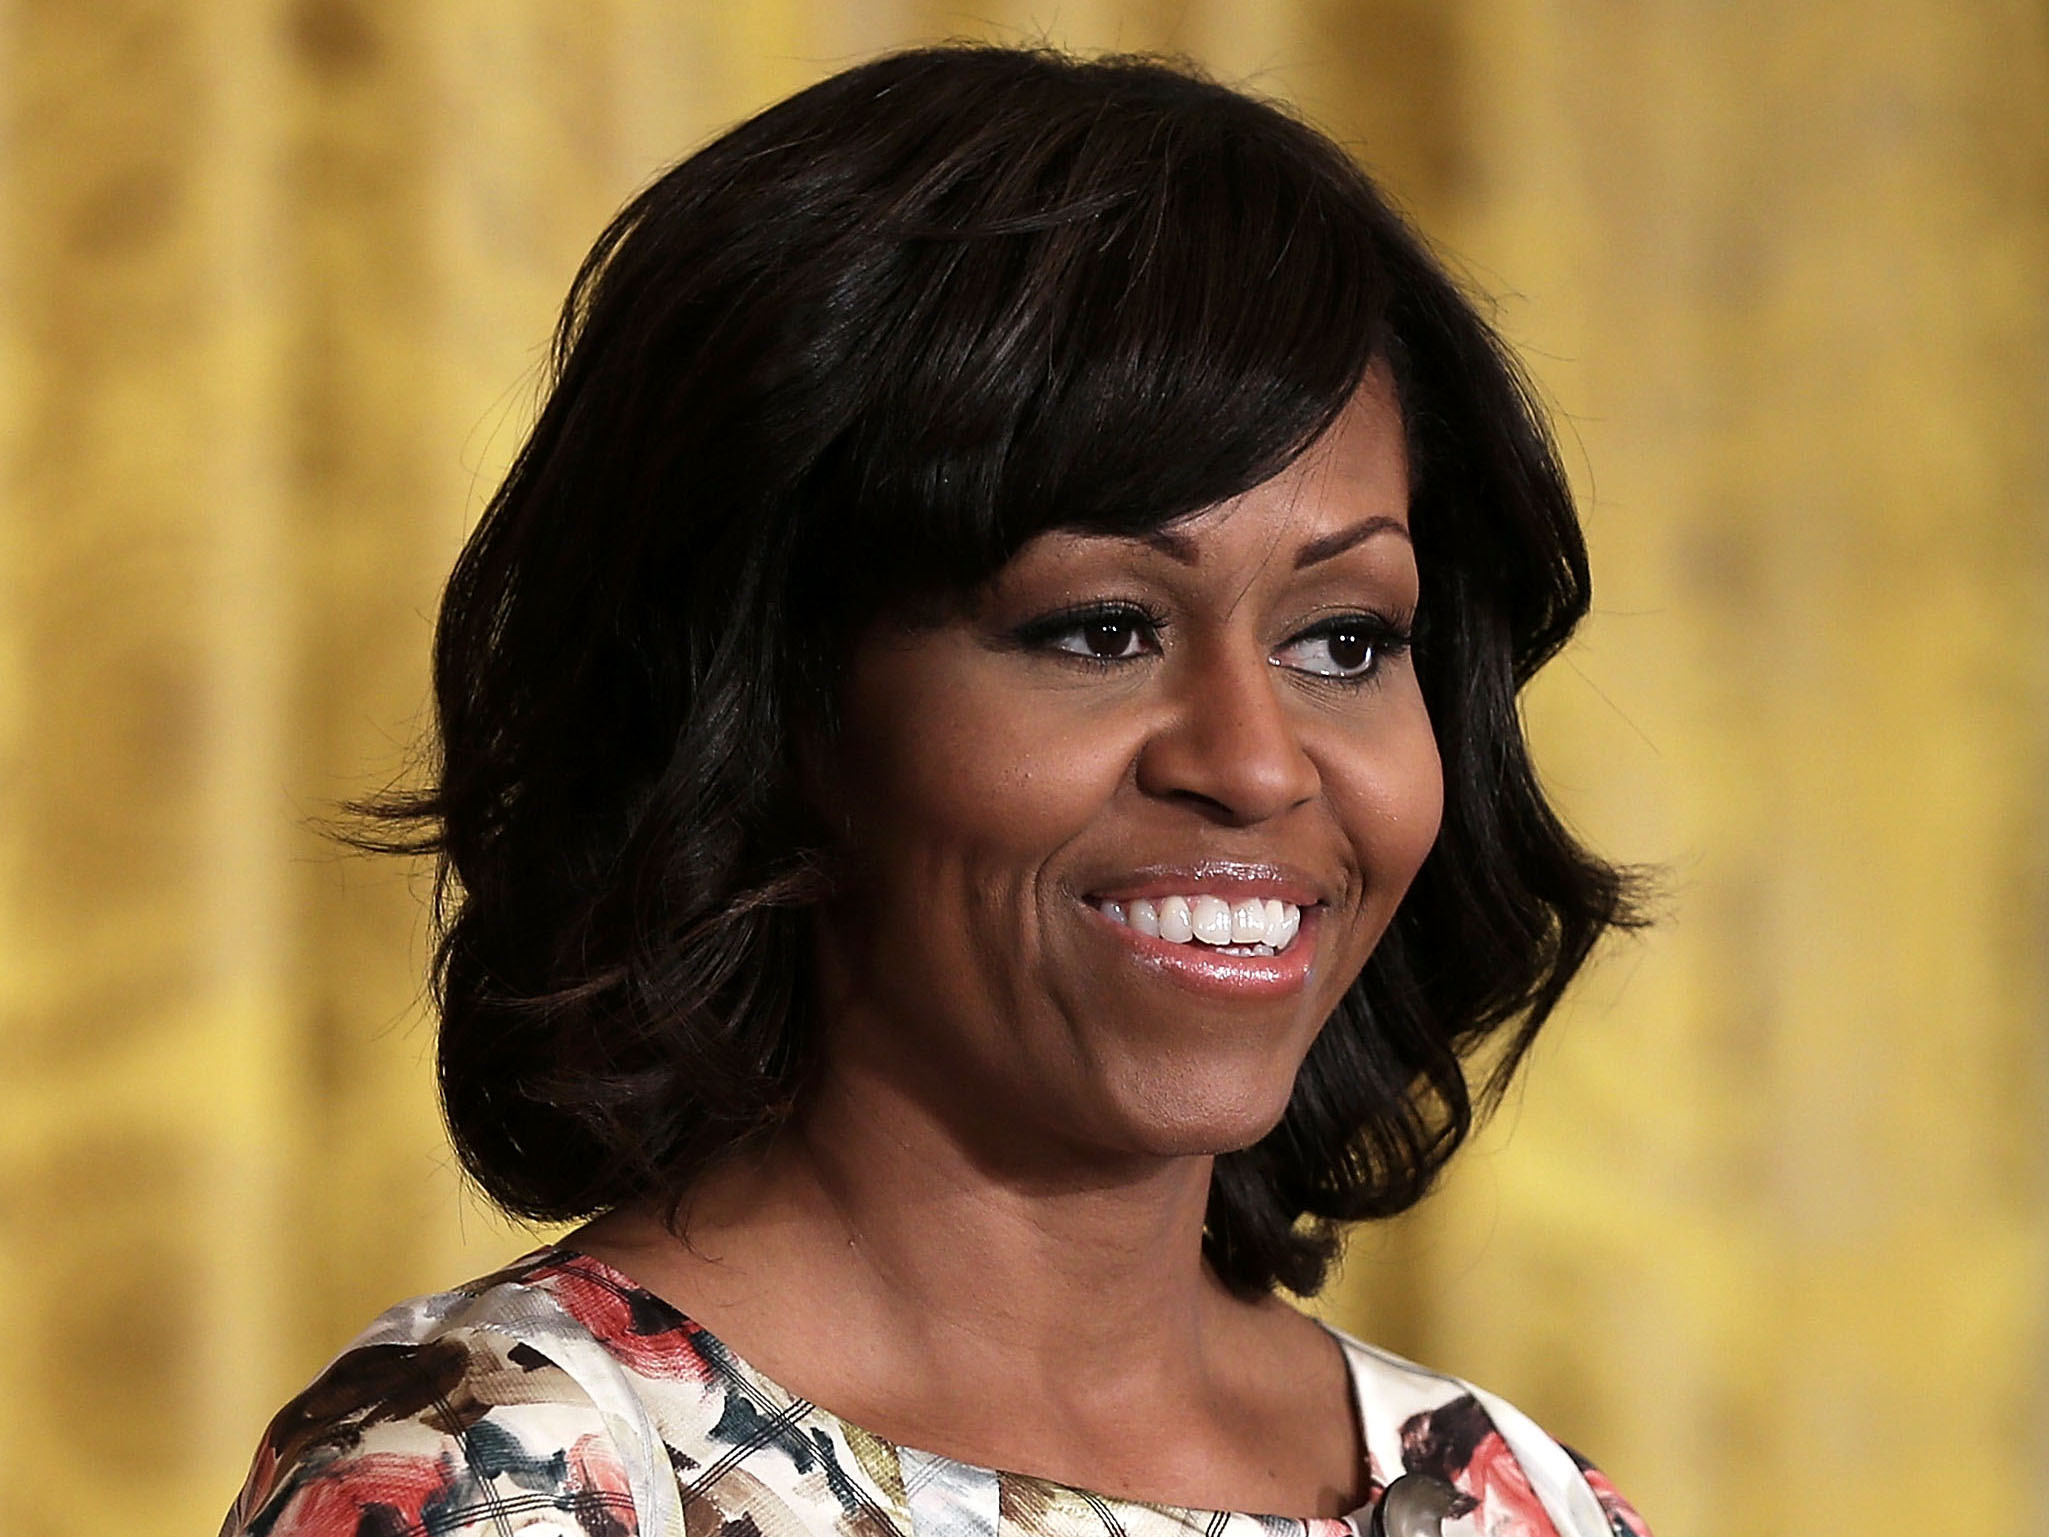 Michelle Obama Wallpapers High Quality